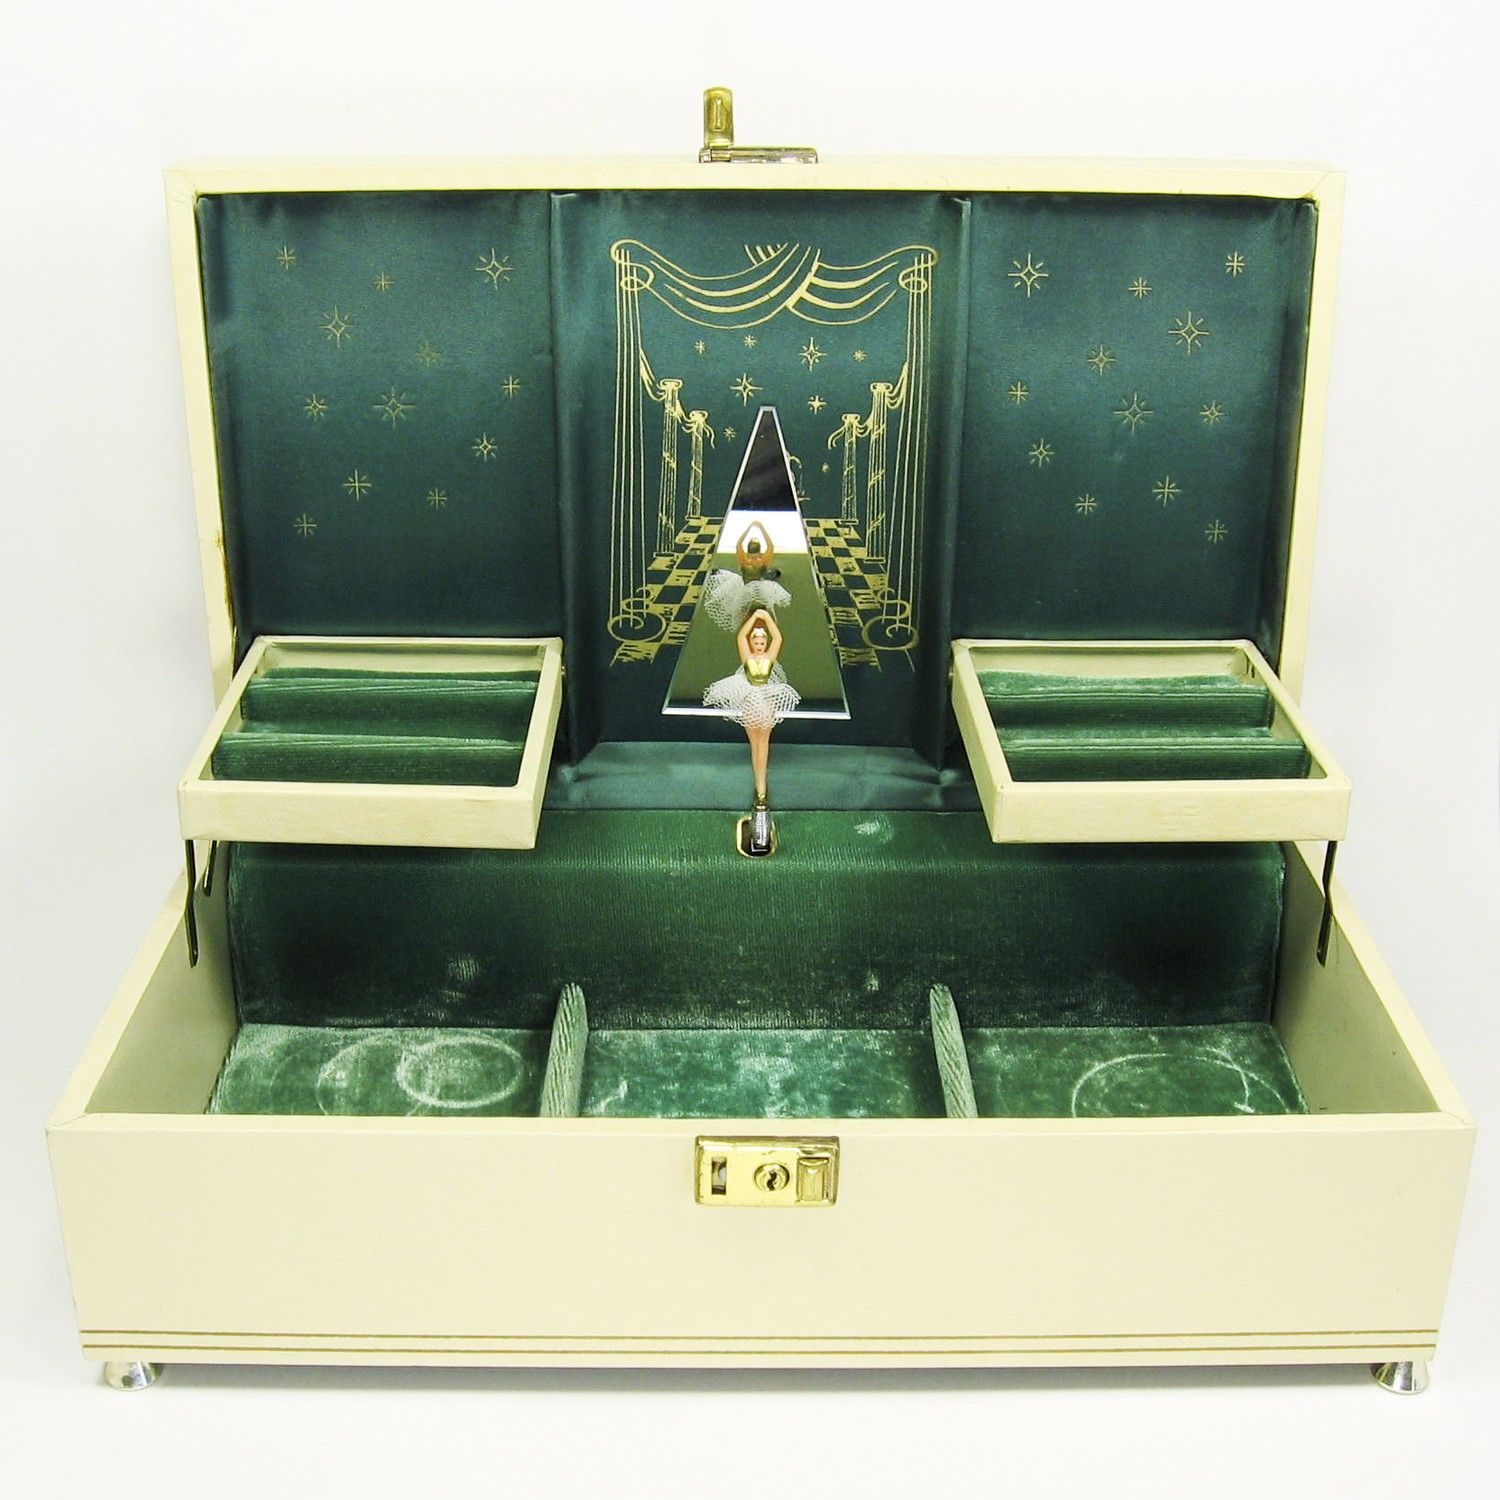 Vintage Cream and Antique Gold Ballerina Musical Jewelry Box 70s